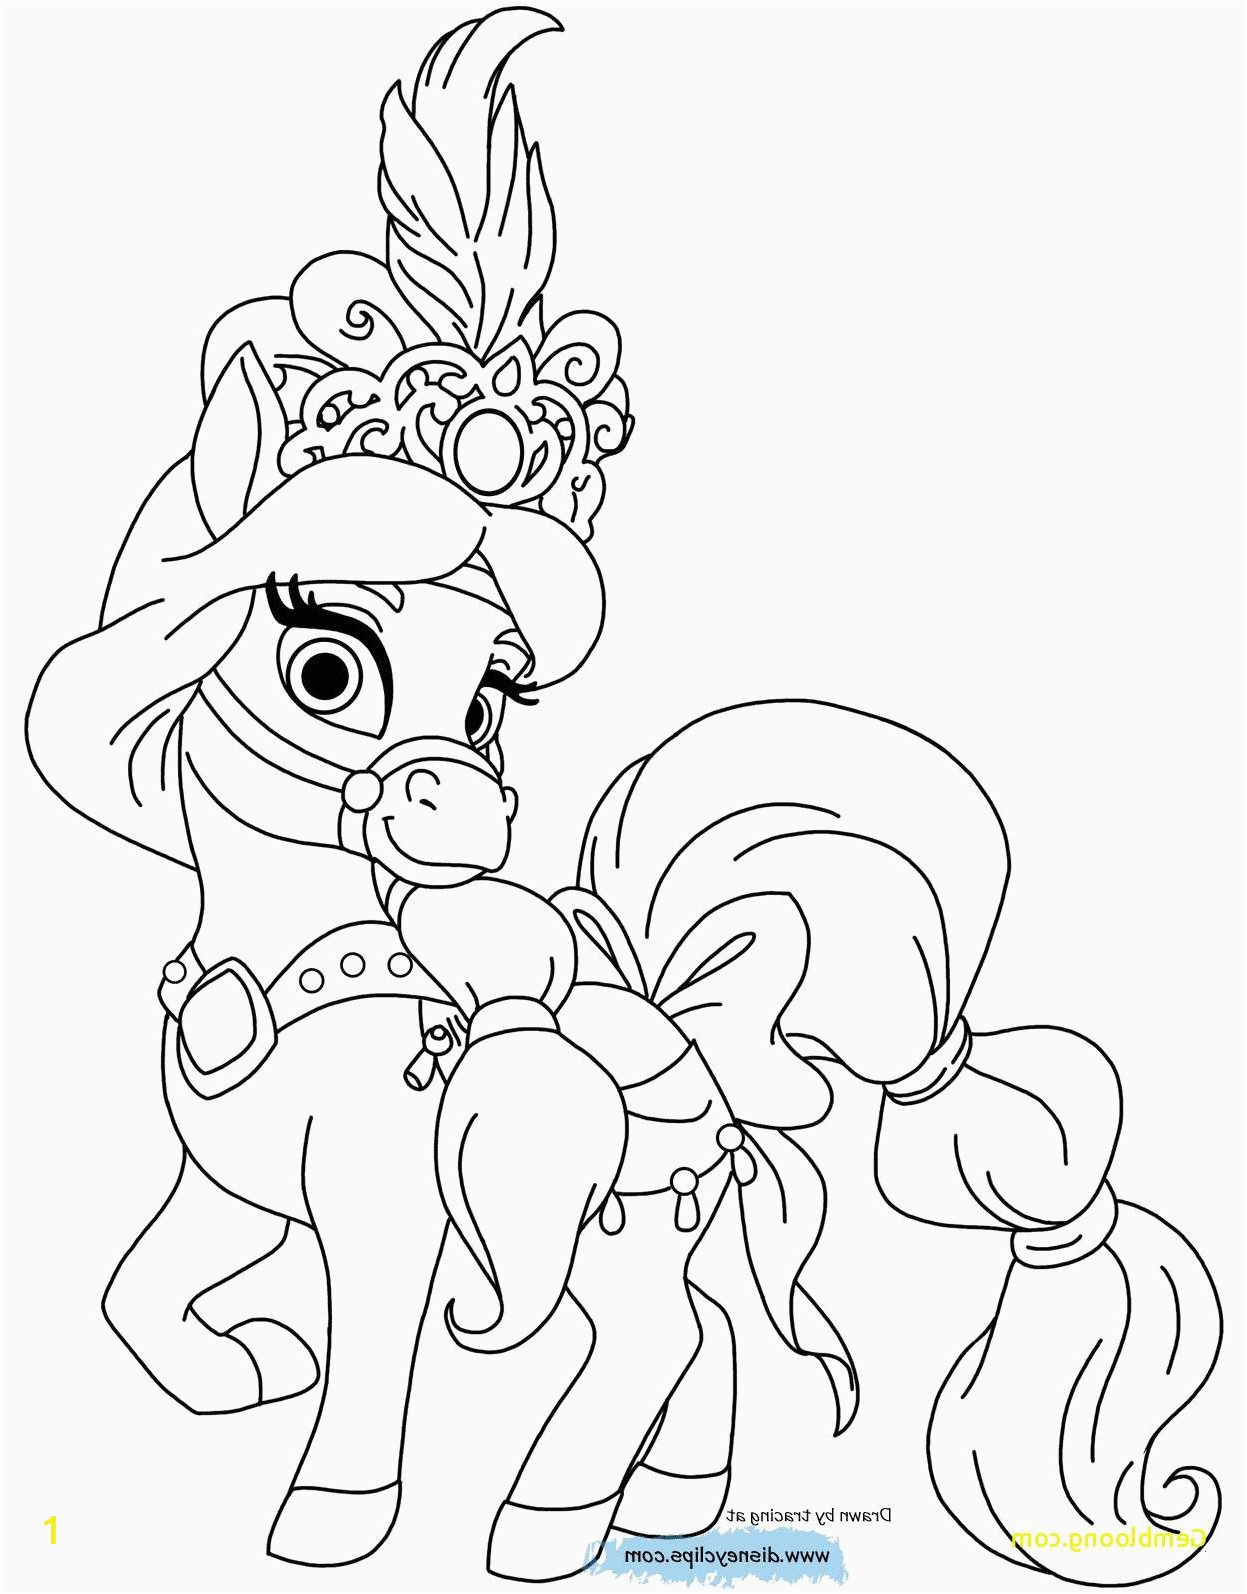 disney characters coloring page inspirational stock 25 printable princess coloring pages free coloring sheets of disney characters coloring page